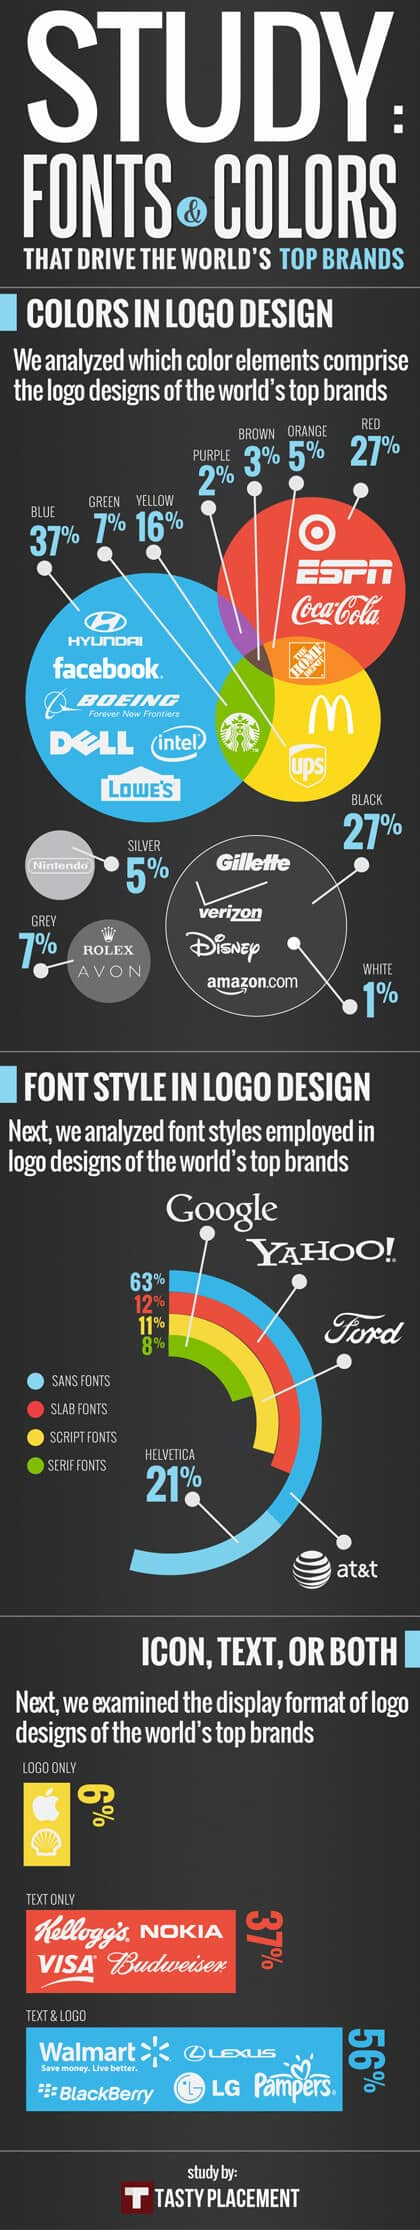 Infographic authored by TastyPlacement, http://www.tastyplacement.com/, an Austin SEO and web design agency